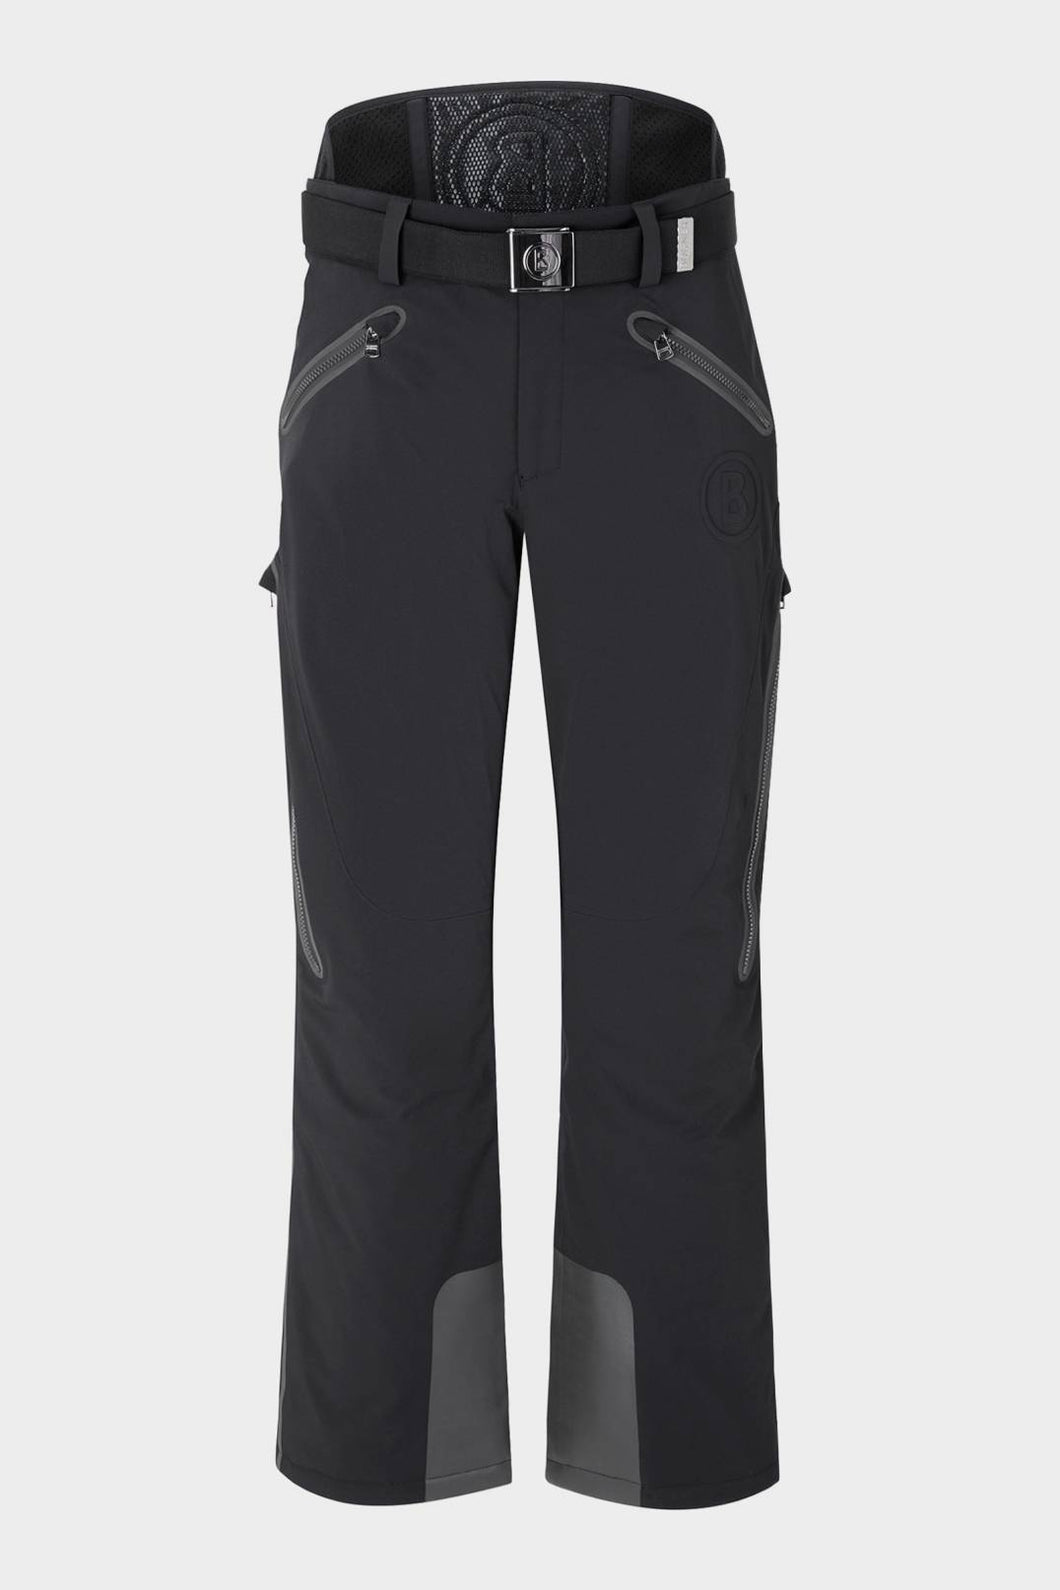 Tim-T 4-Way Stretch pants - black